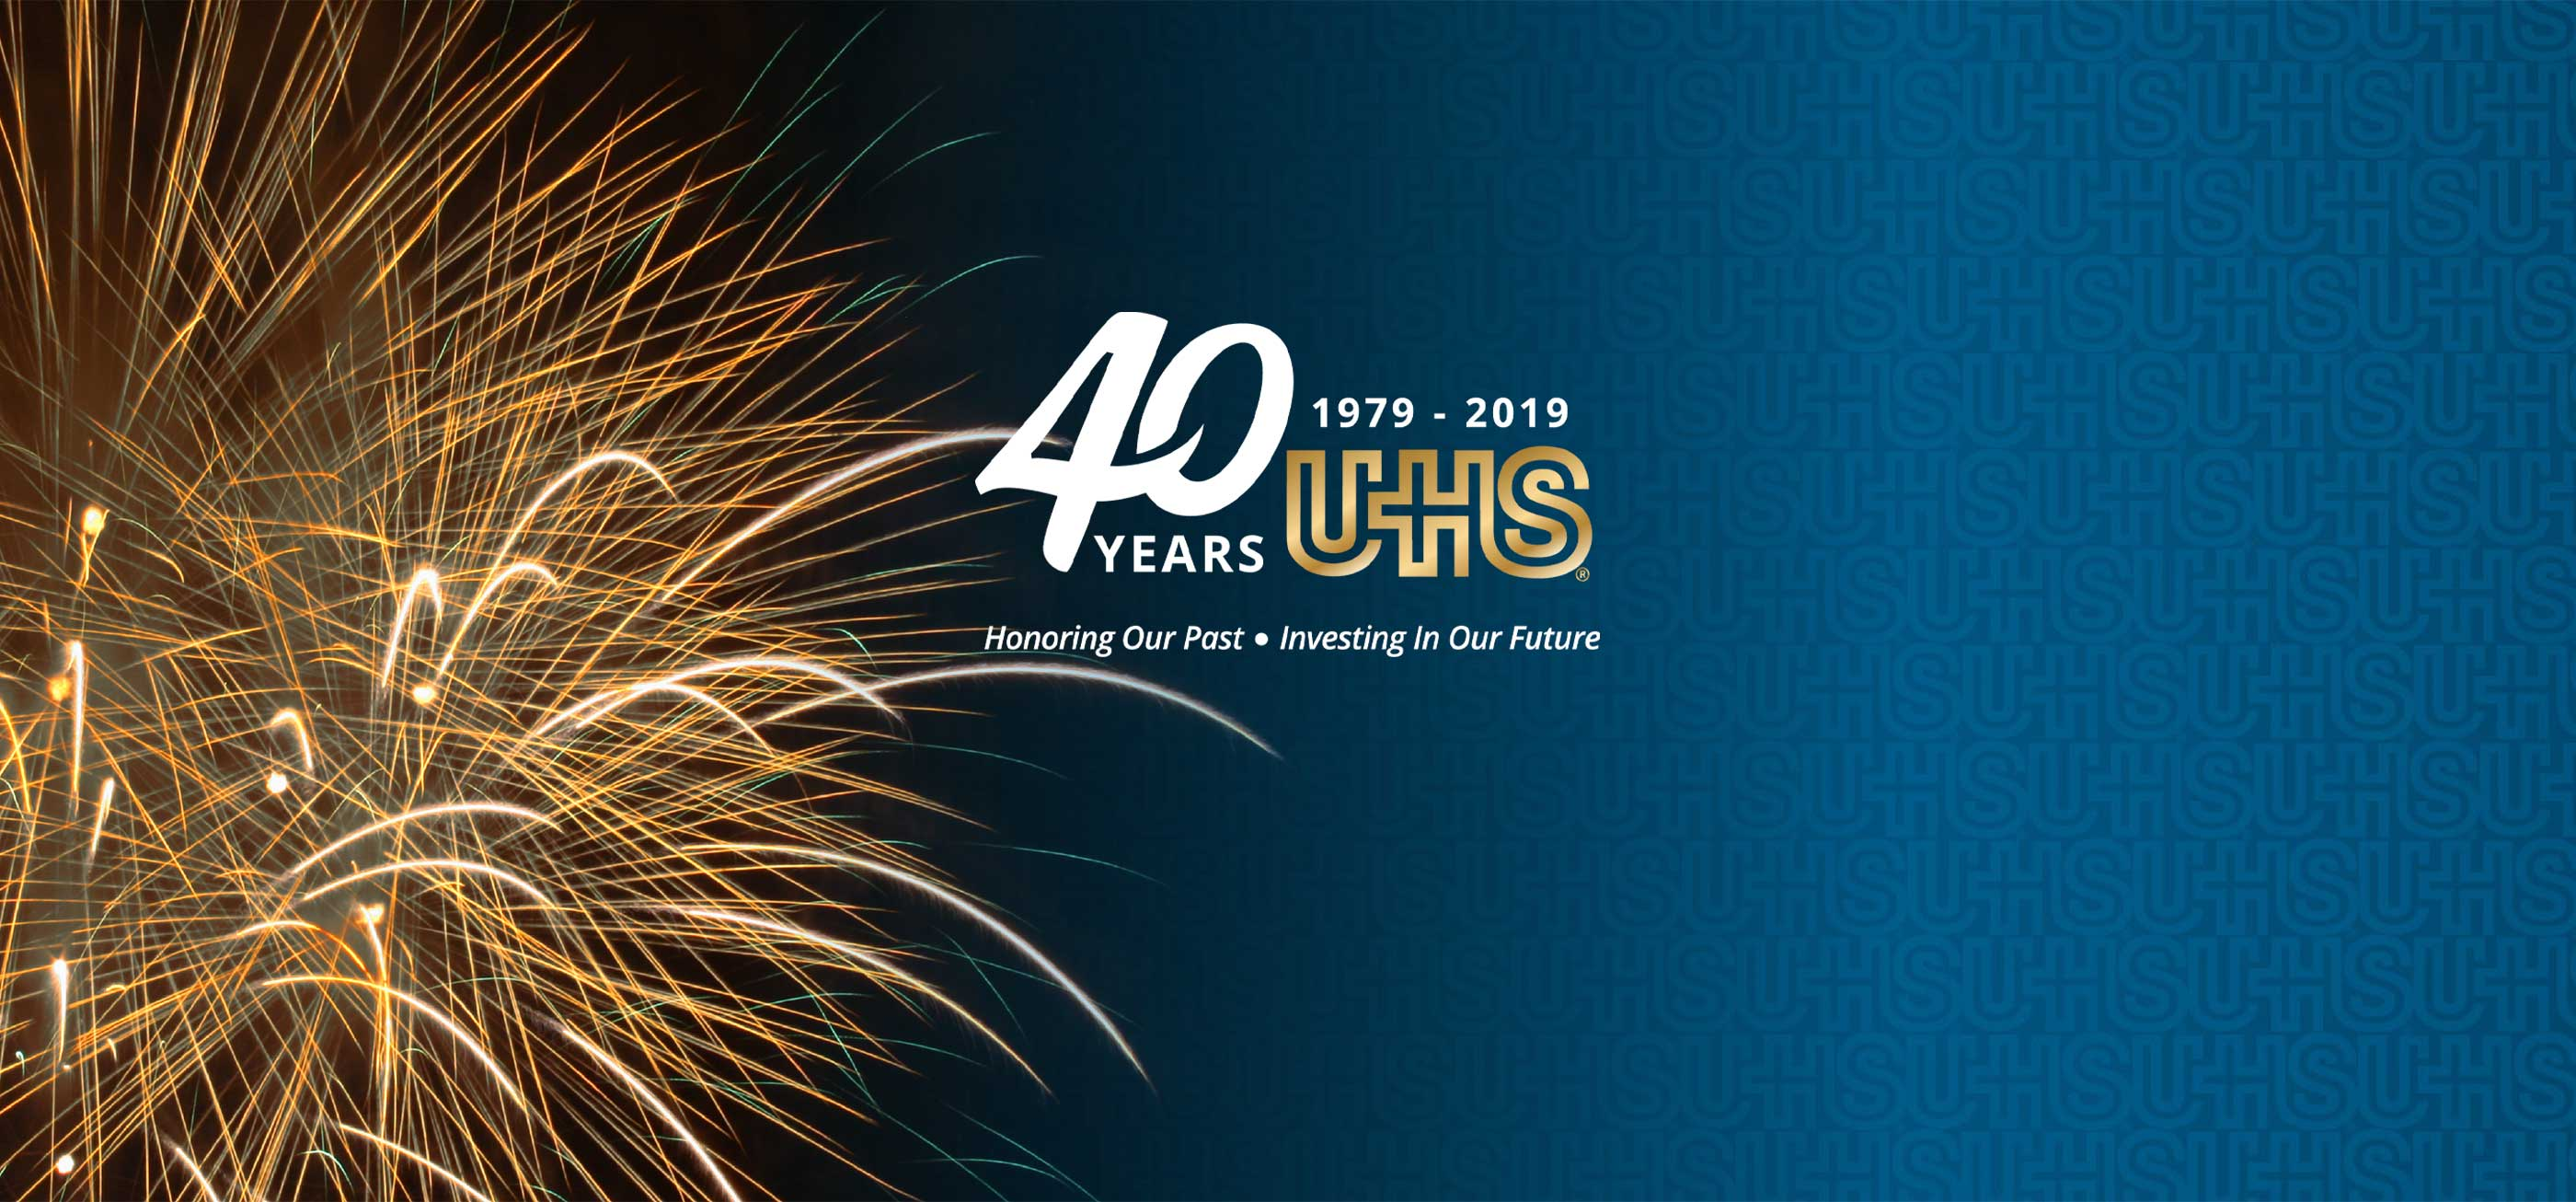 UHS 40 years